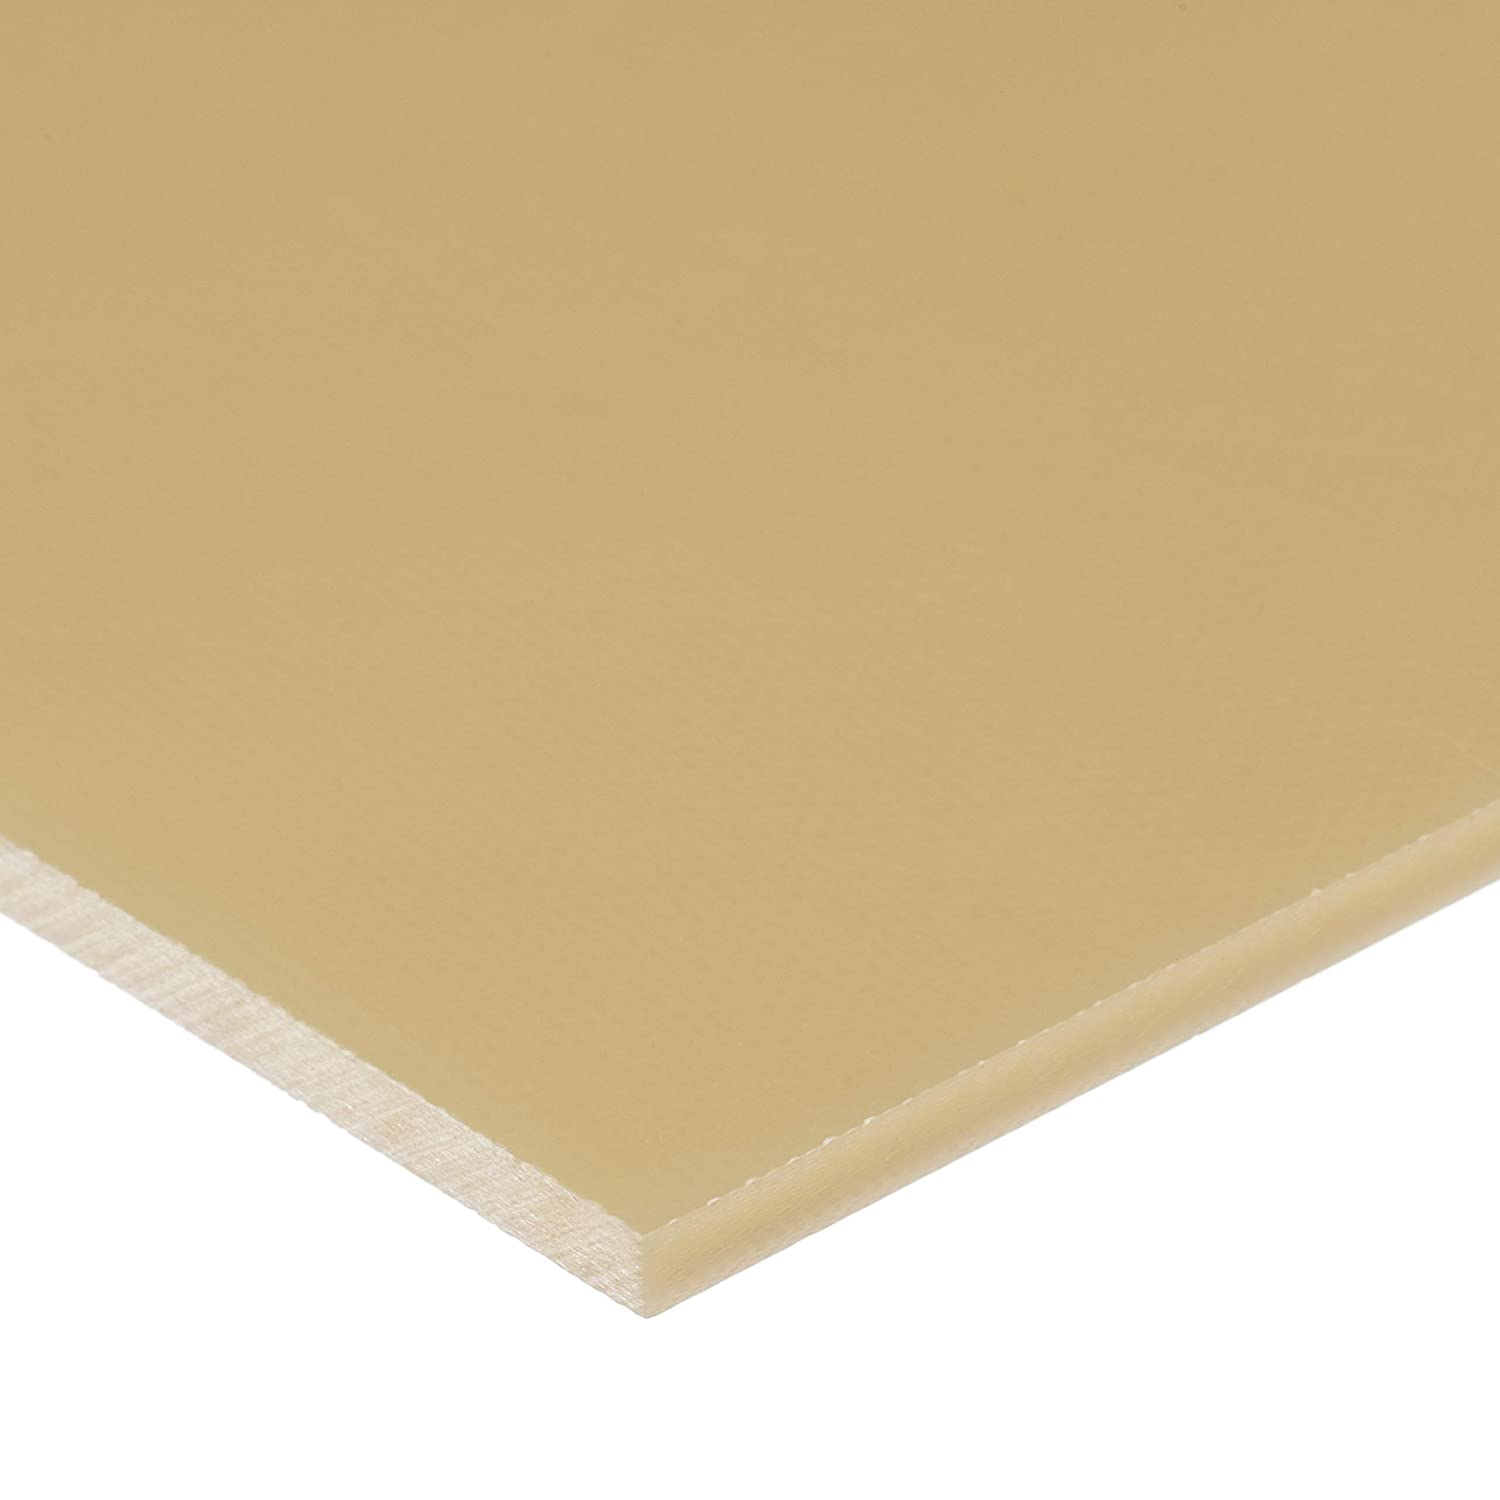 USA Sealing 5% OFF Beauty products ABS Plastic Bar - 1 12